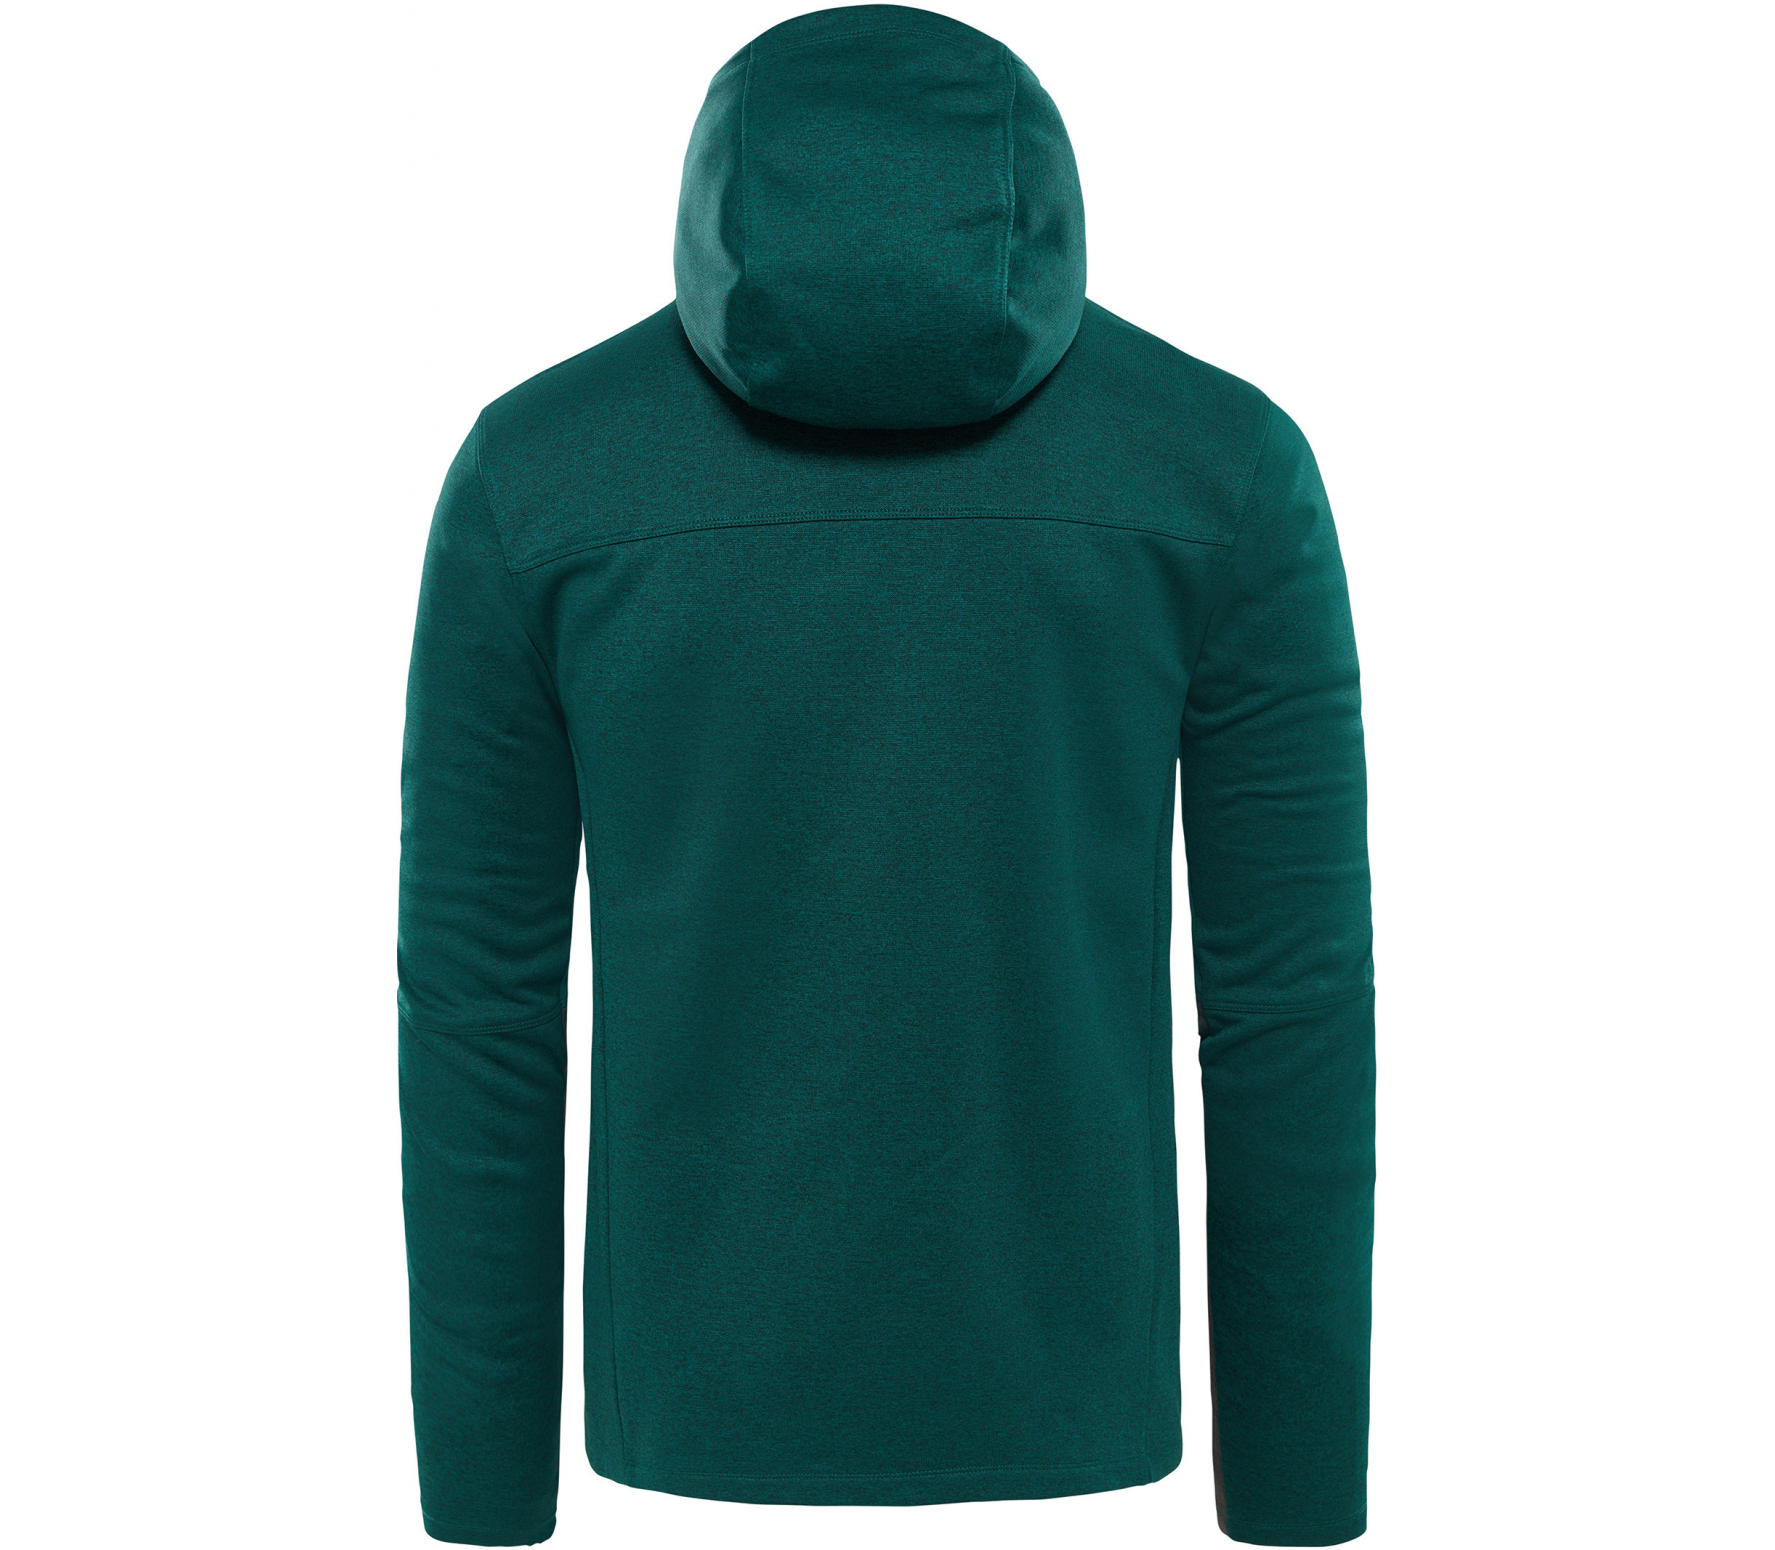 The North Face - Canyonlands Full Zip Uomo Felpa con cappuccio (verde) c6444b061a6d